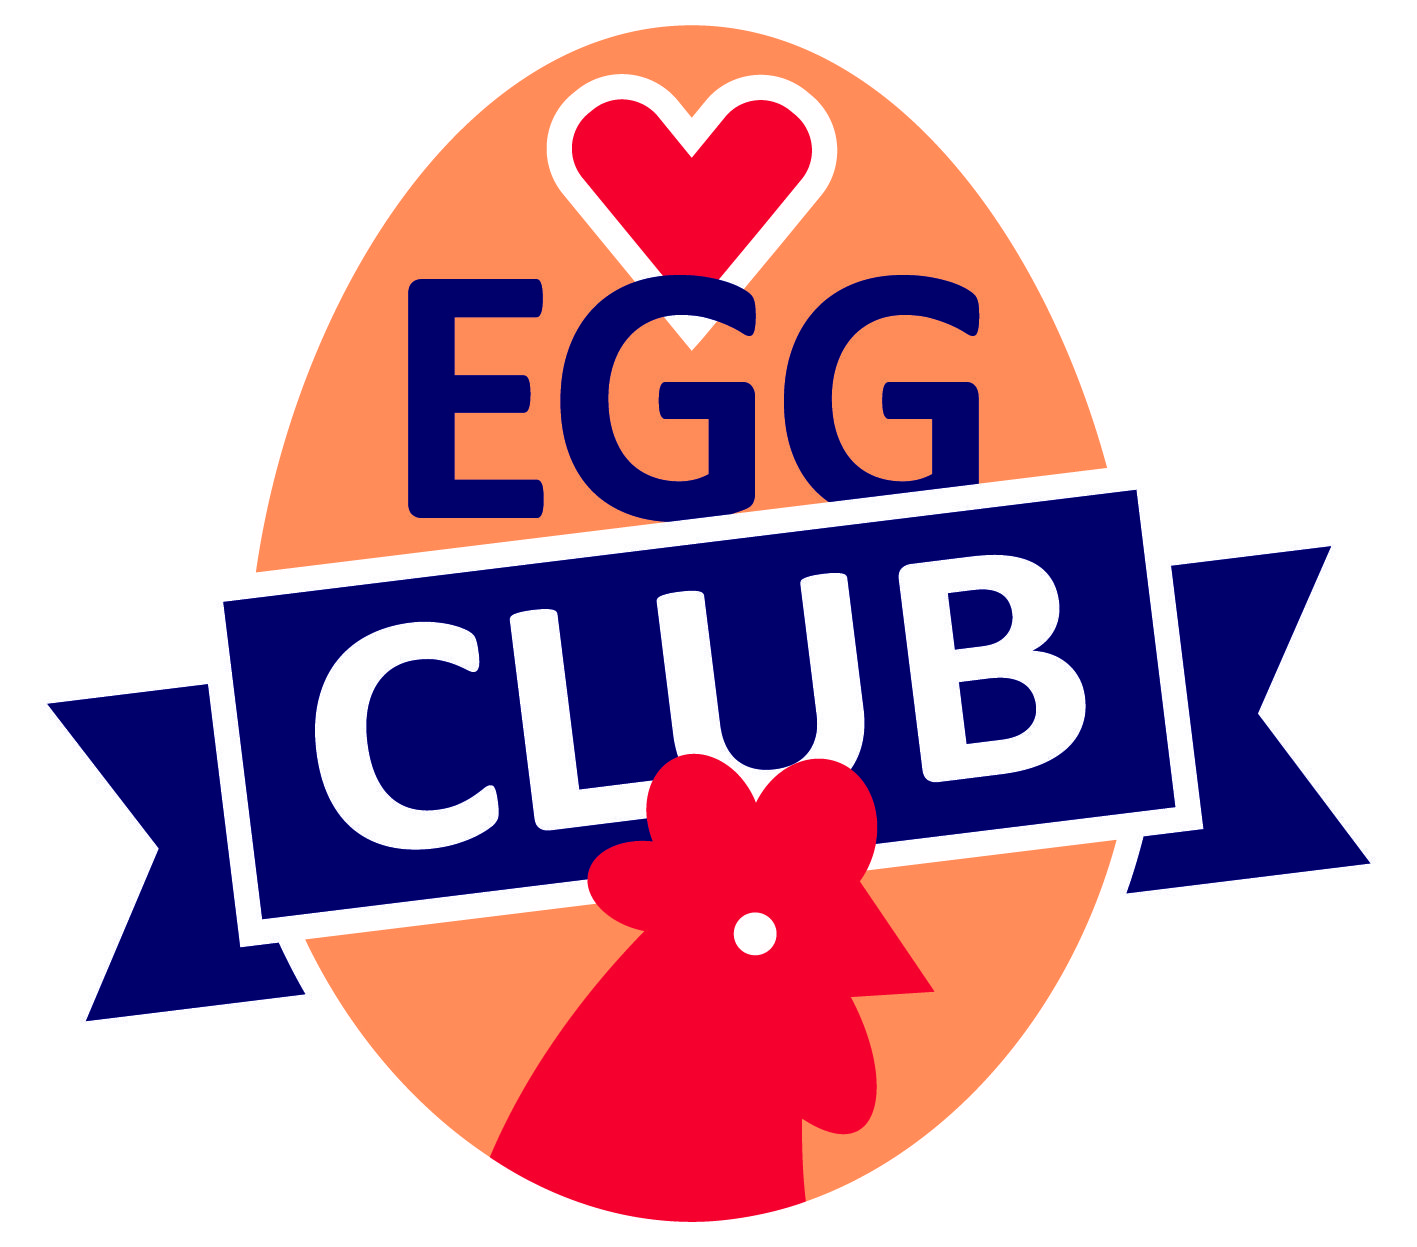 Join the BHWT Egg Club Chickens backyard, Club, Donate